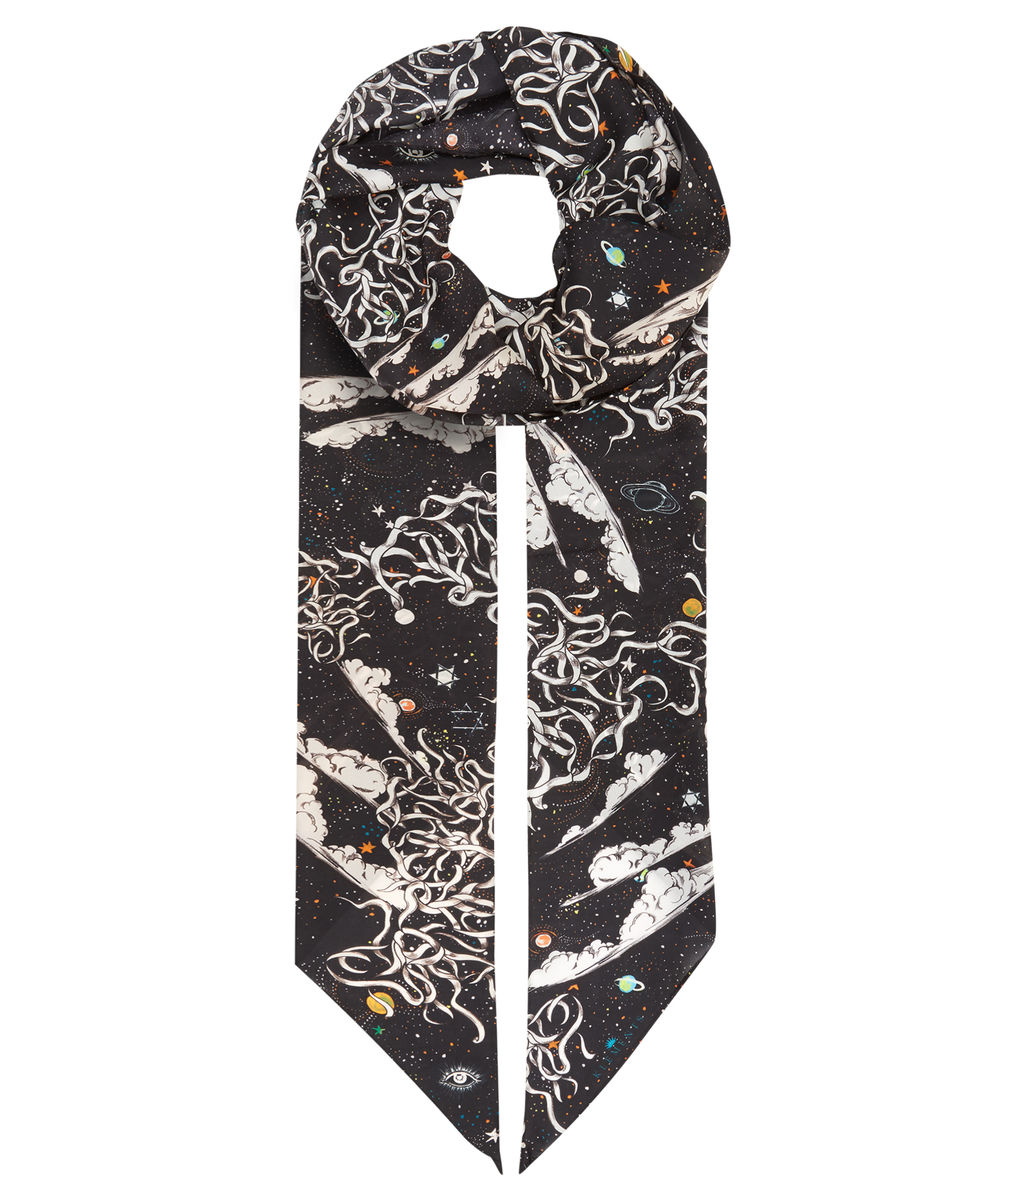 Razor scarf Tear Garden print - product images  of